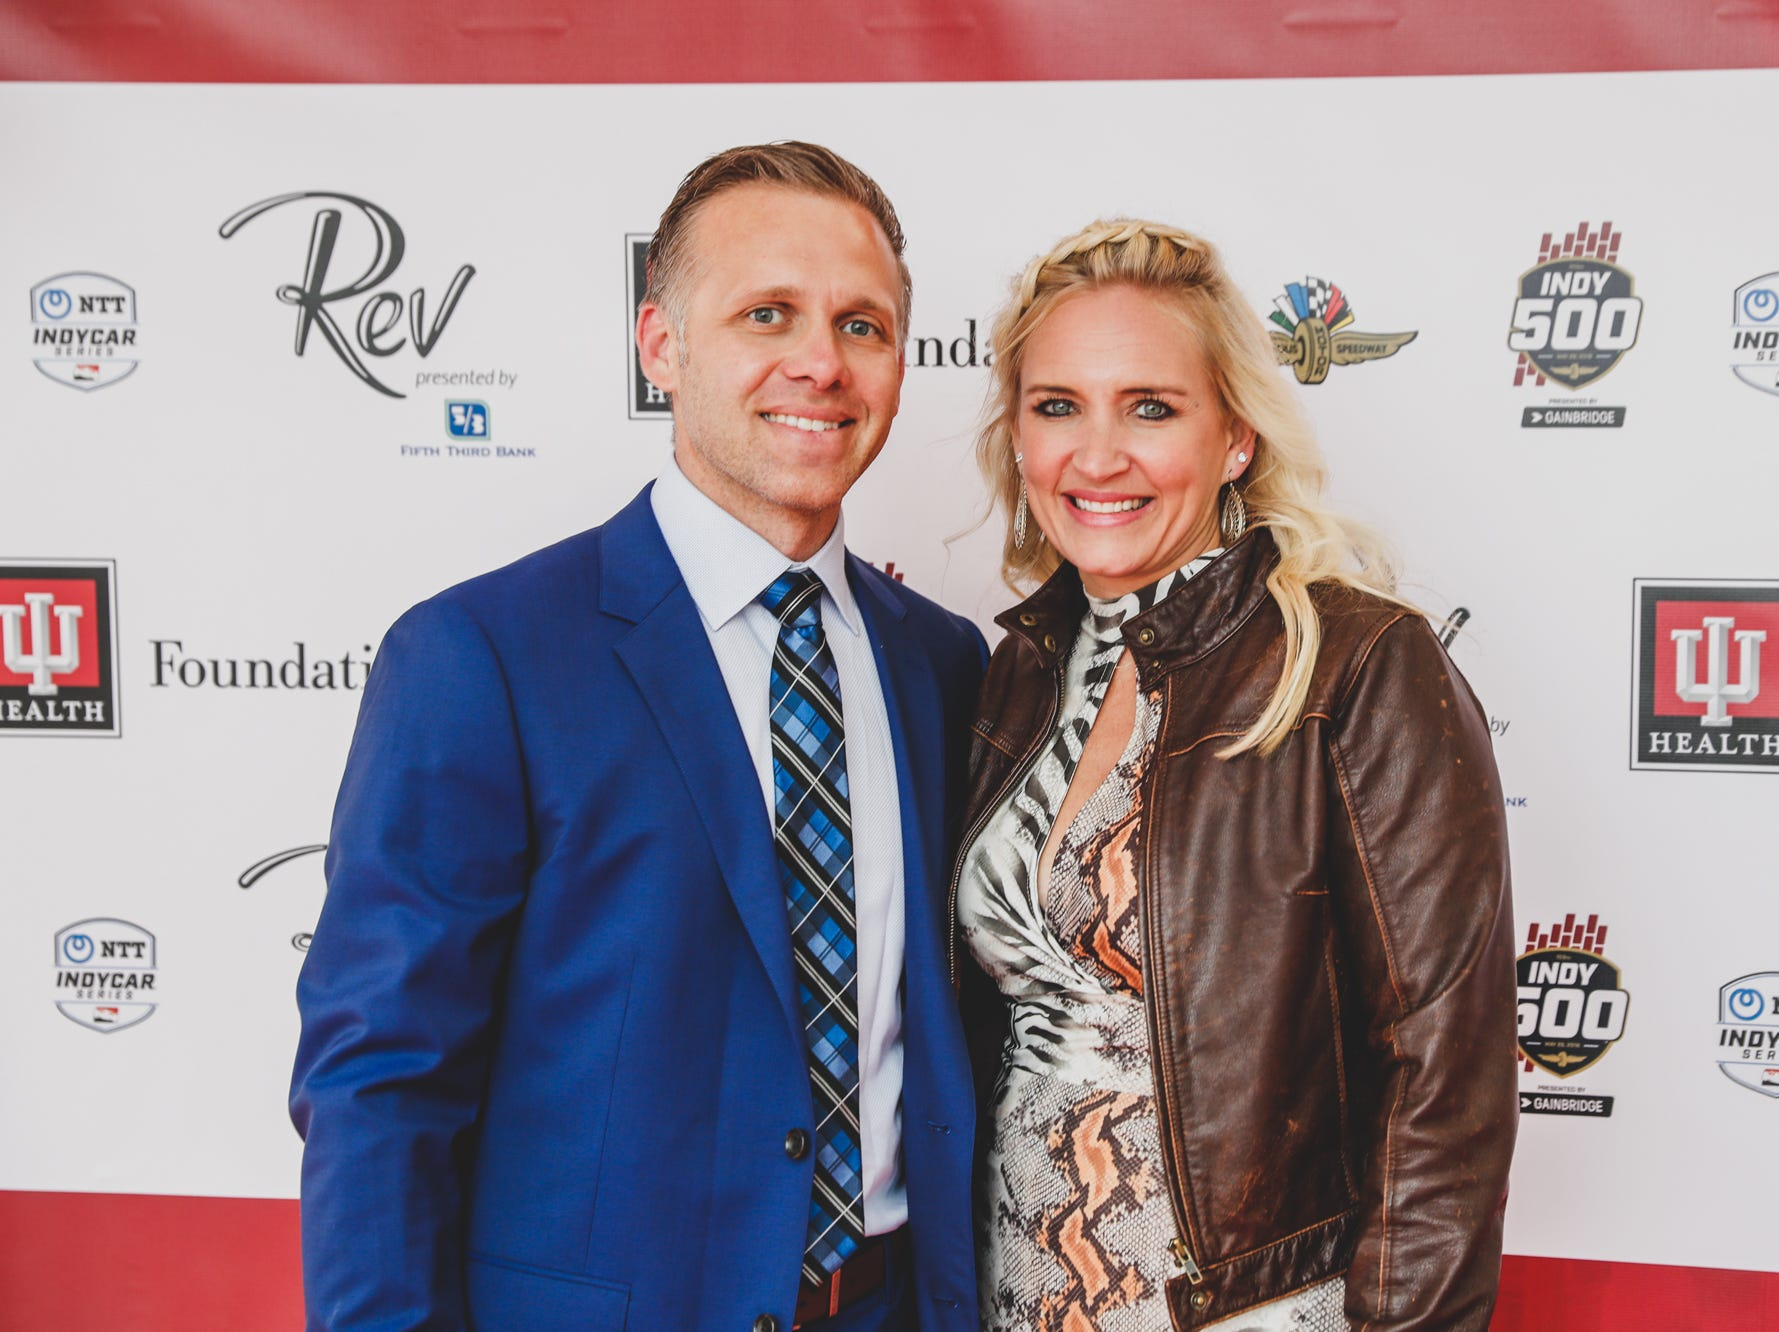 IndyCar driver and team owner, Ed Carpenter an his wife Heather walk the red carpet at the Rev Indy fundraiser, held at the Indianapolis Motor Speedway on Saturday, May 4, 2019. Funds raised support the IU Health Foundation statewide and the IU Health Emergency Medical Center at IMS.